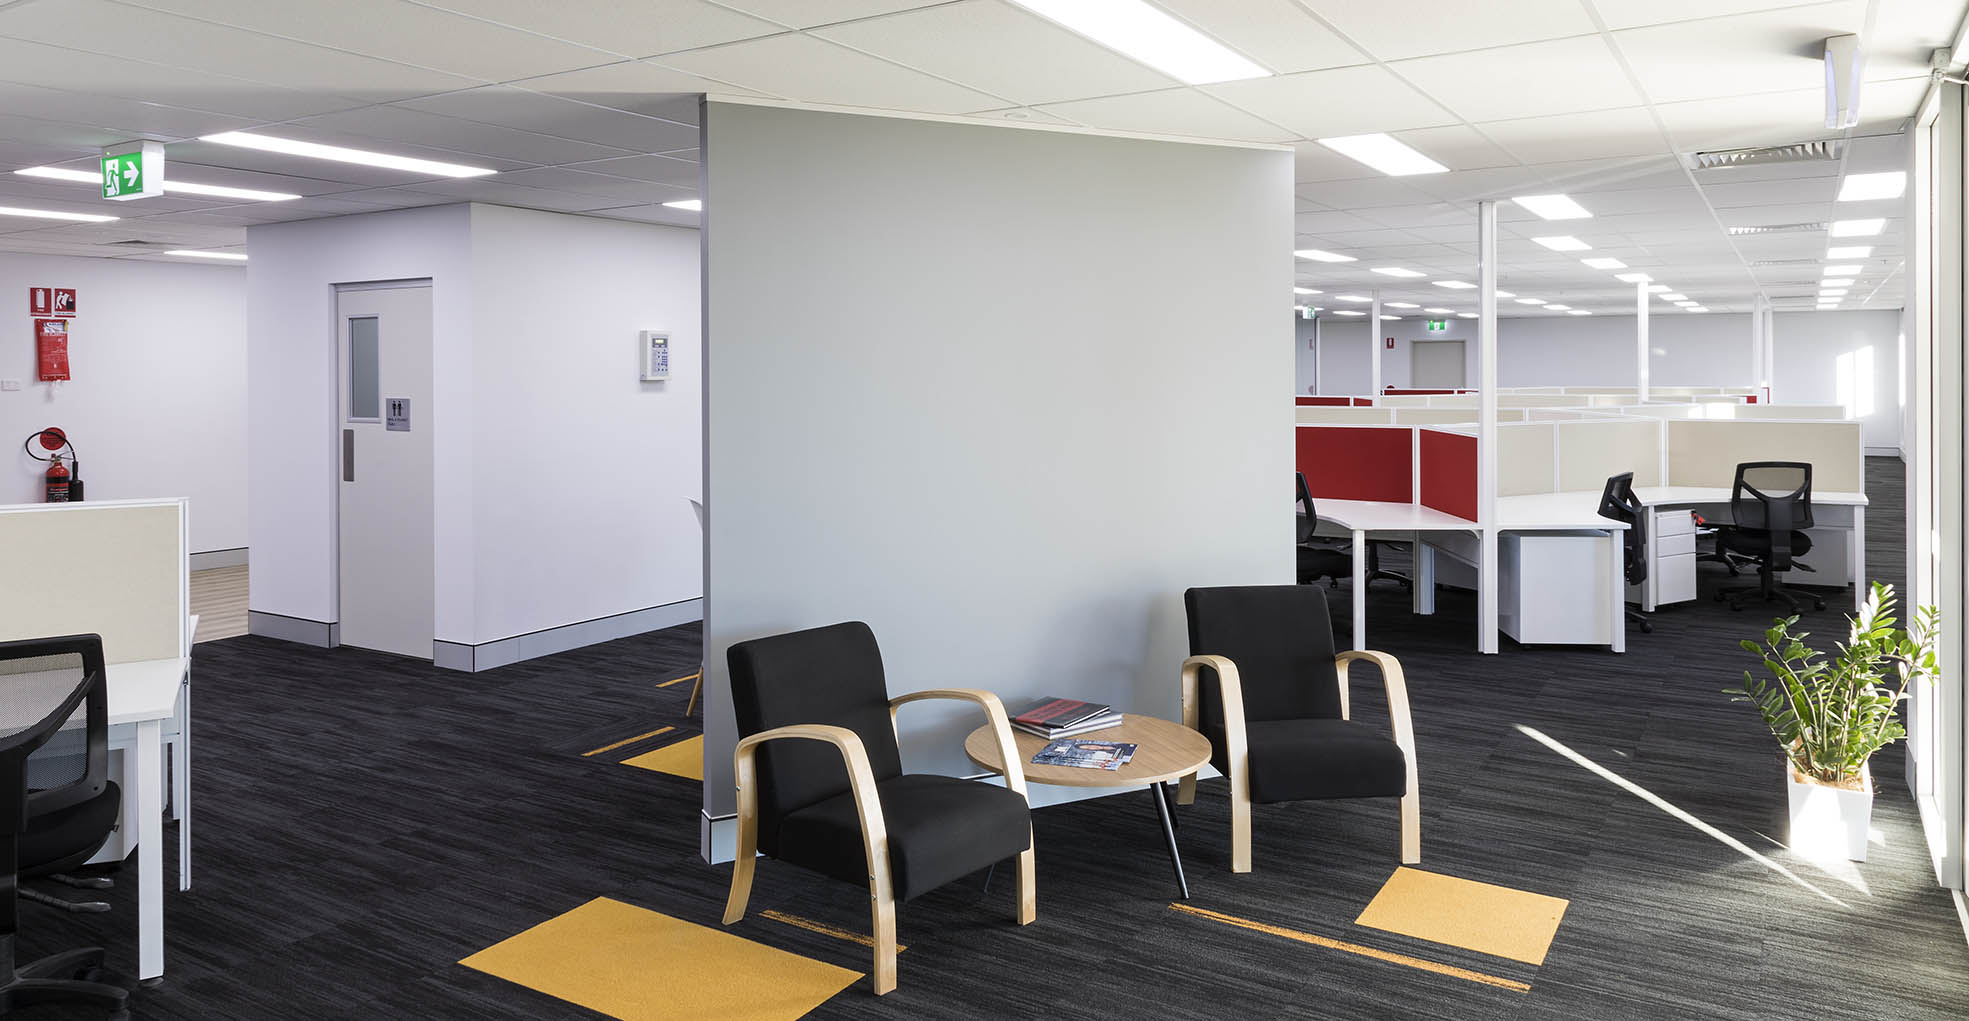 Cnh Industrial Parts Office Design And Fit Outs In Penrith Parramatta North Amp West Sydney